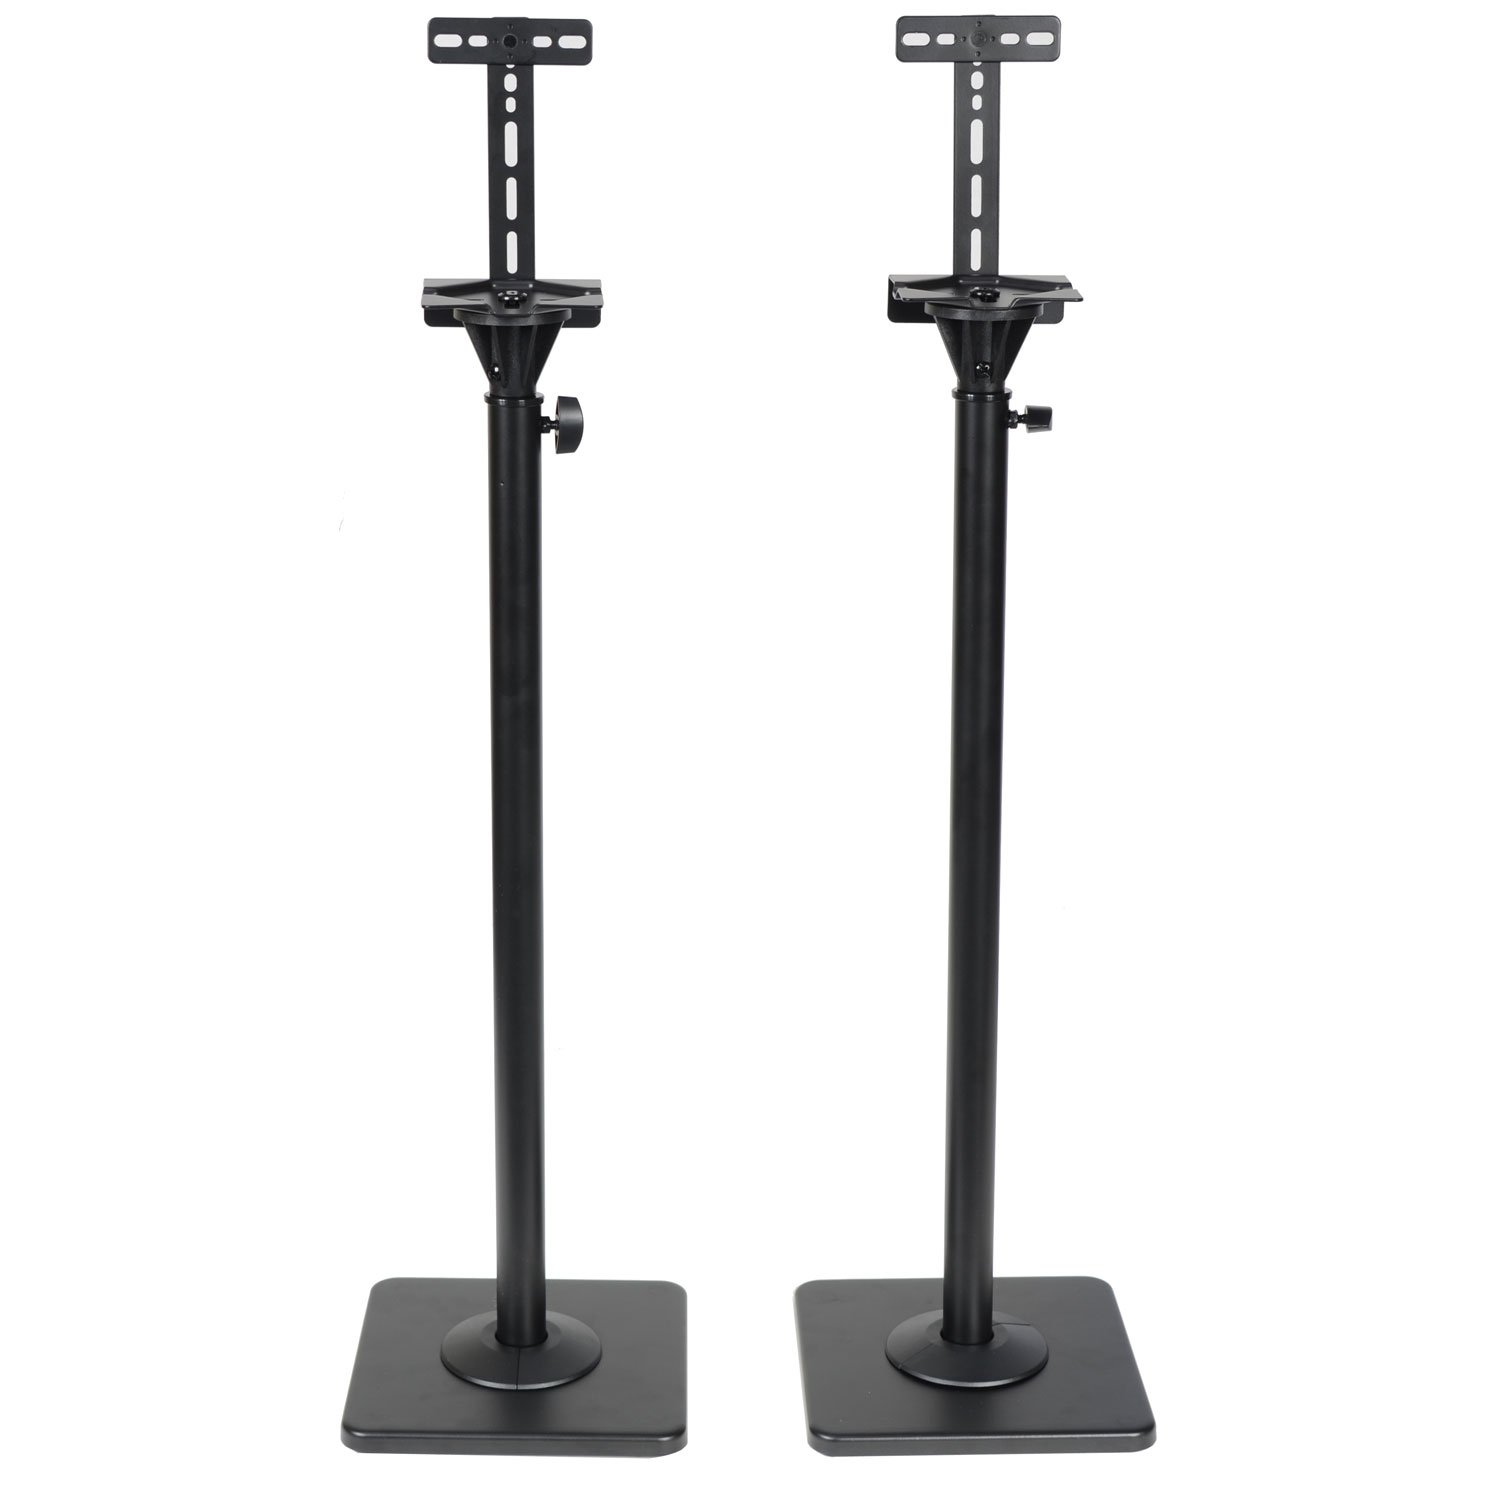 VideoSecu One Pair Height Adjustable Speaker Stands Mounts Heavy Duty Floor Stands Surround Sound Satellite Small Bookshelf Speakers Stand MS08B DA8 by VideoSecu